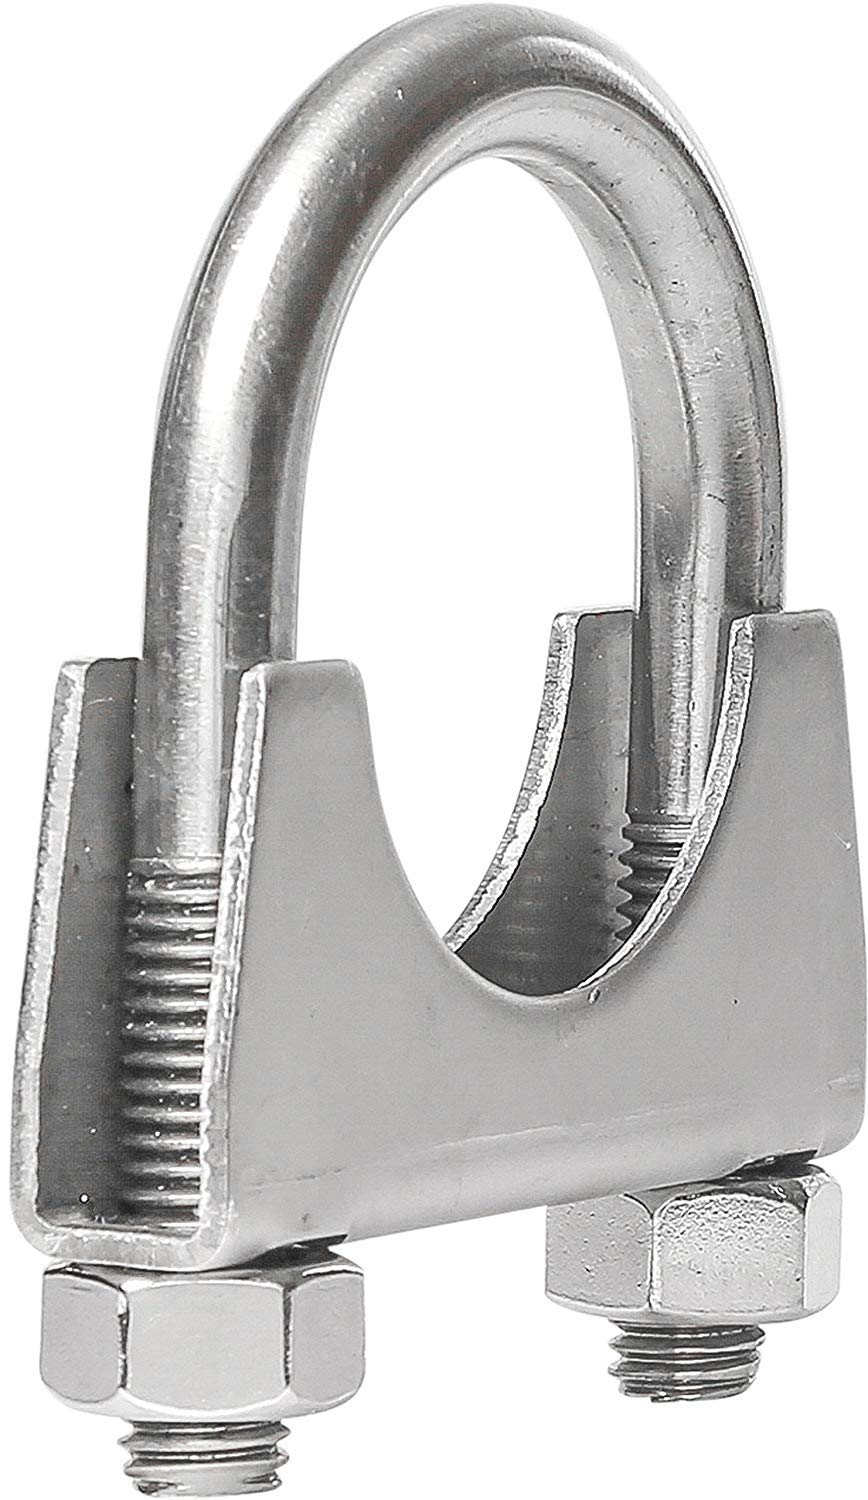 TOTALFLOW 2.25 TF-225SS 409 Stainless Steel Single Bolt AccuSeal Exhaust Muffler Clamp Band-2.25 Inch